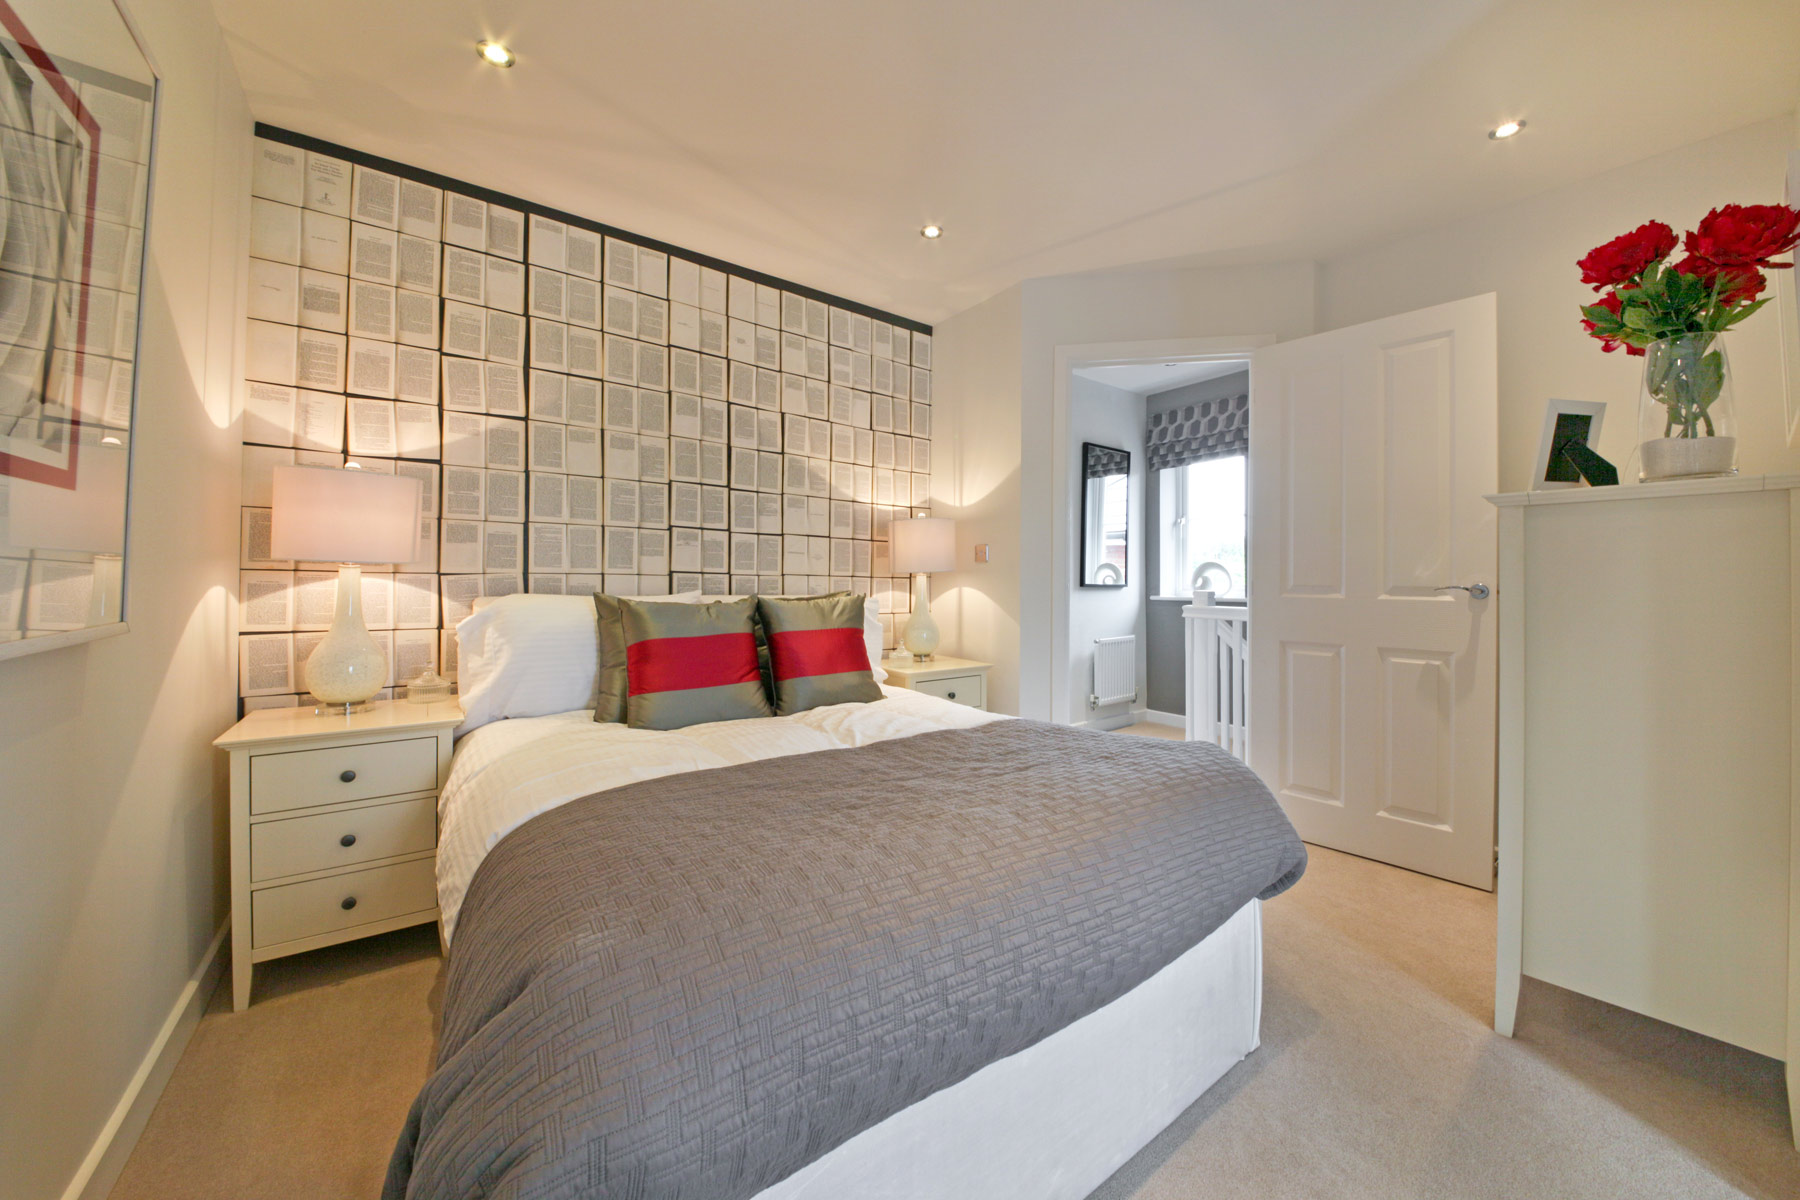 A typical Taylor Wimpey bedroom.